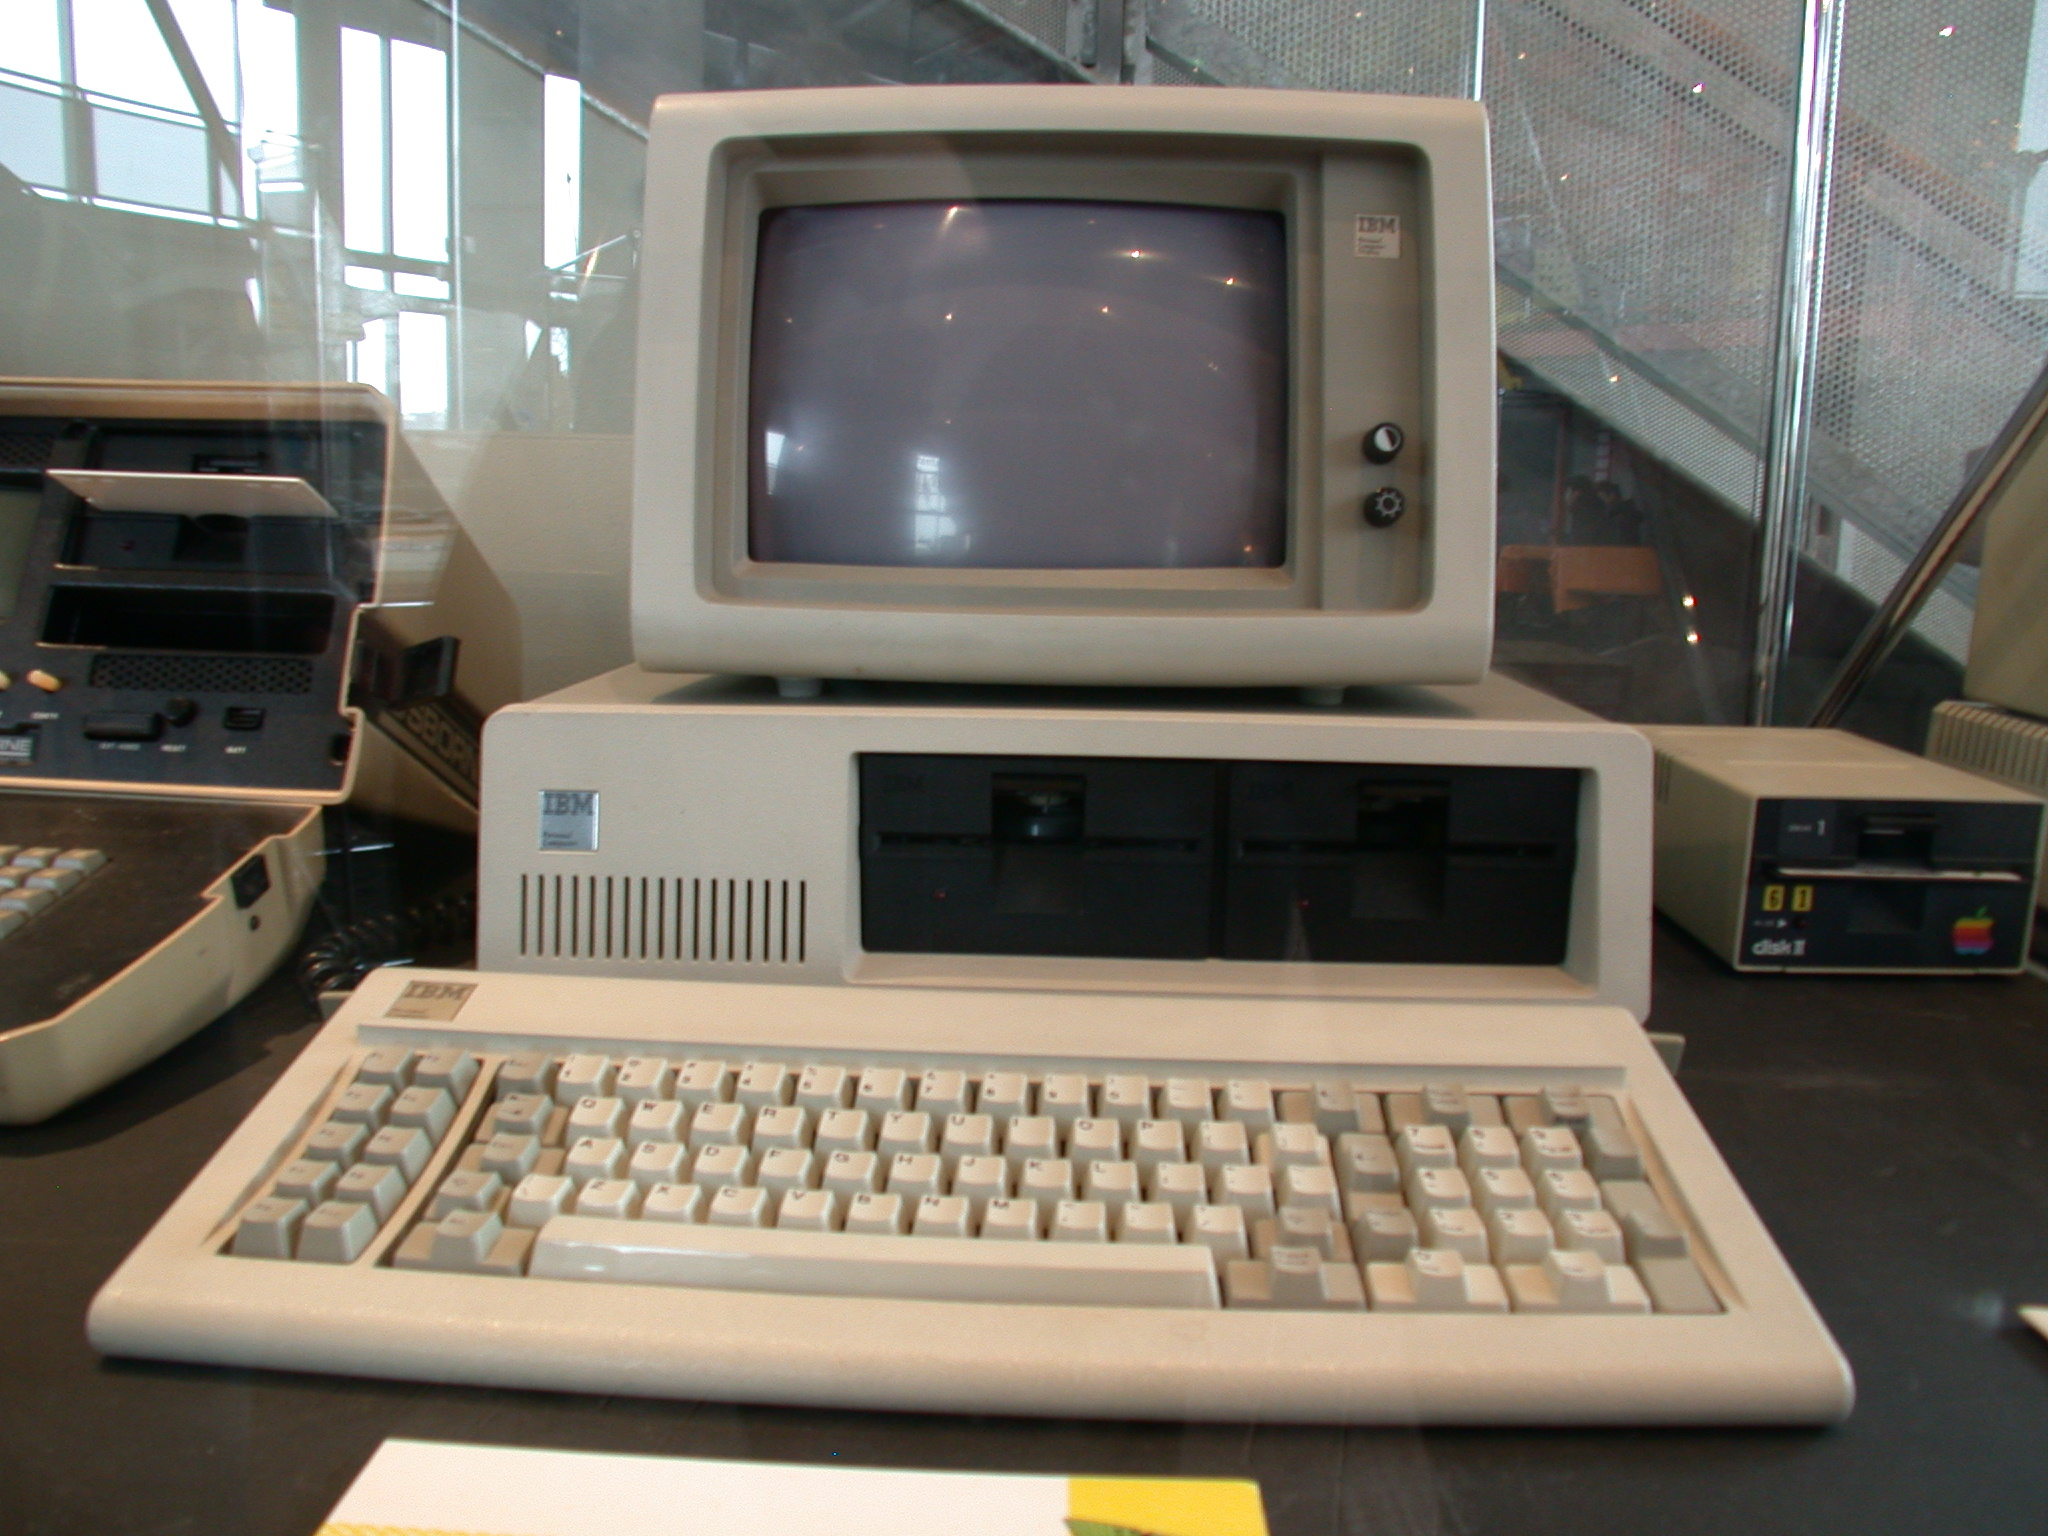 computer objects antique ibm monitor terminal keyboard diskdrive beige plastic